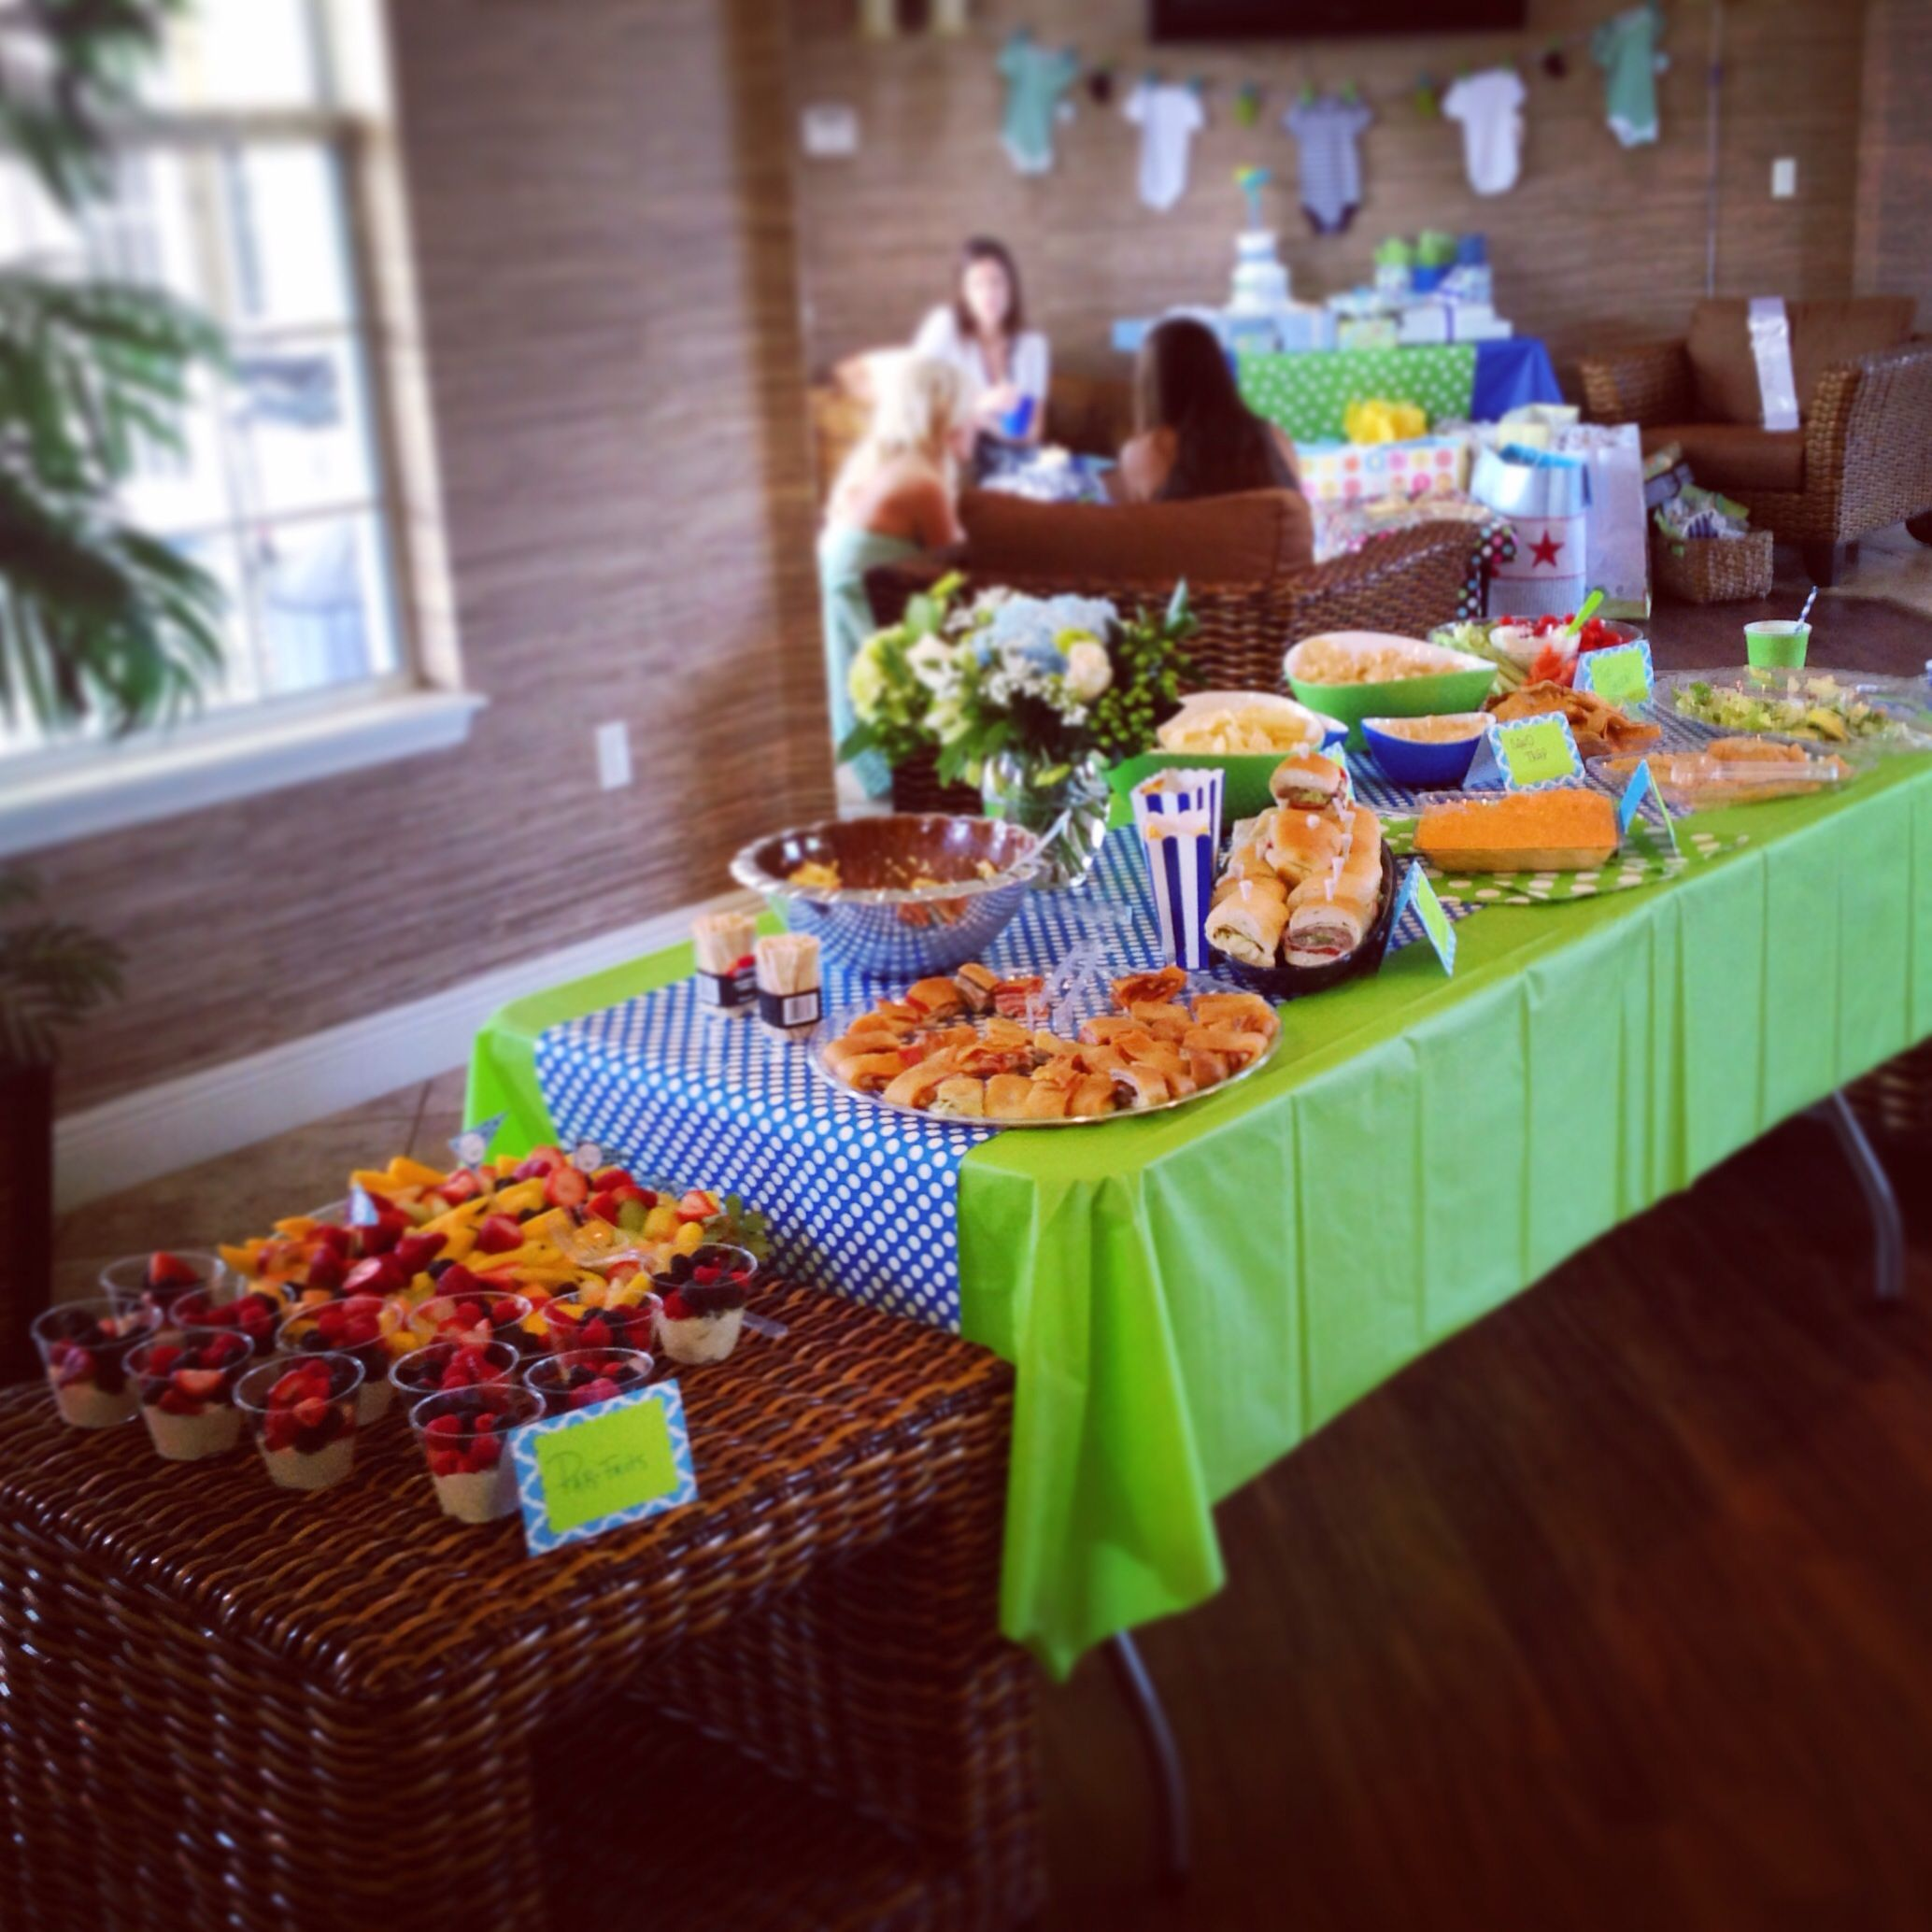 Golf Theme Baby Shower Food Table Set Up